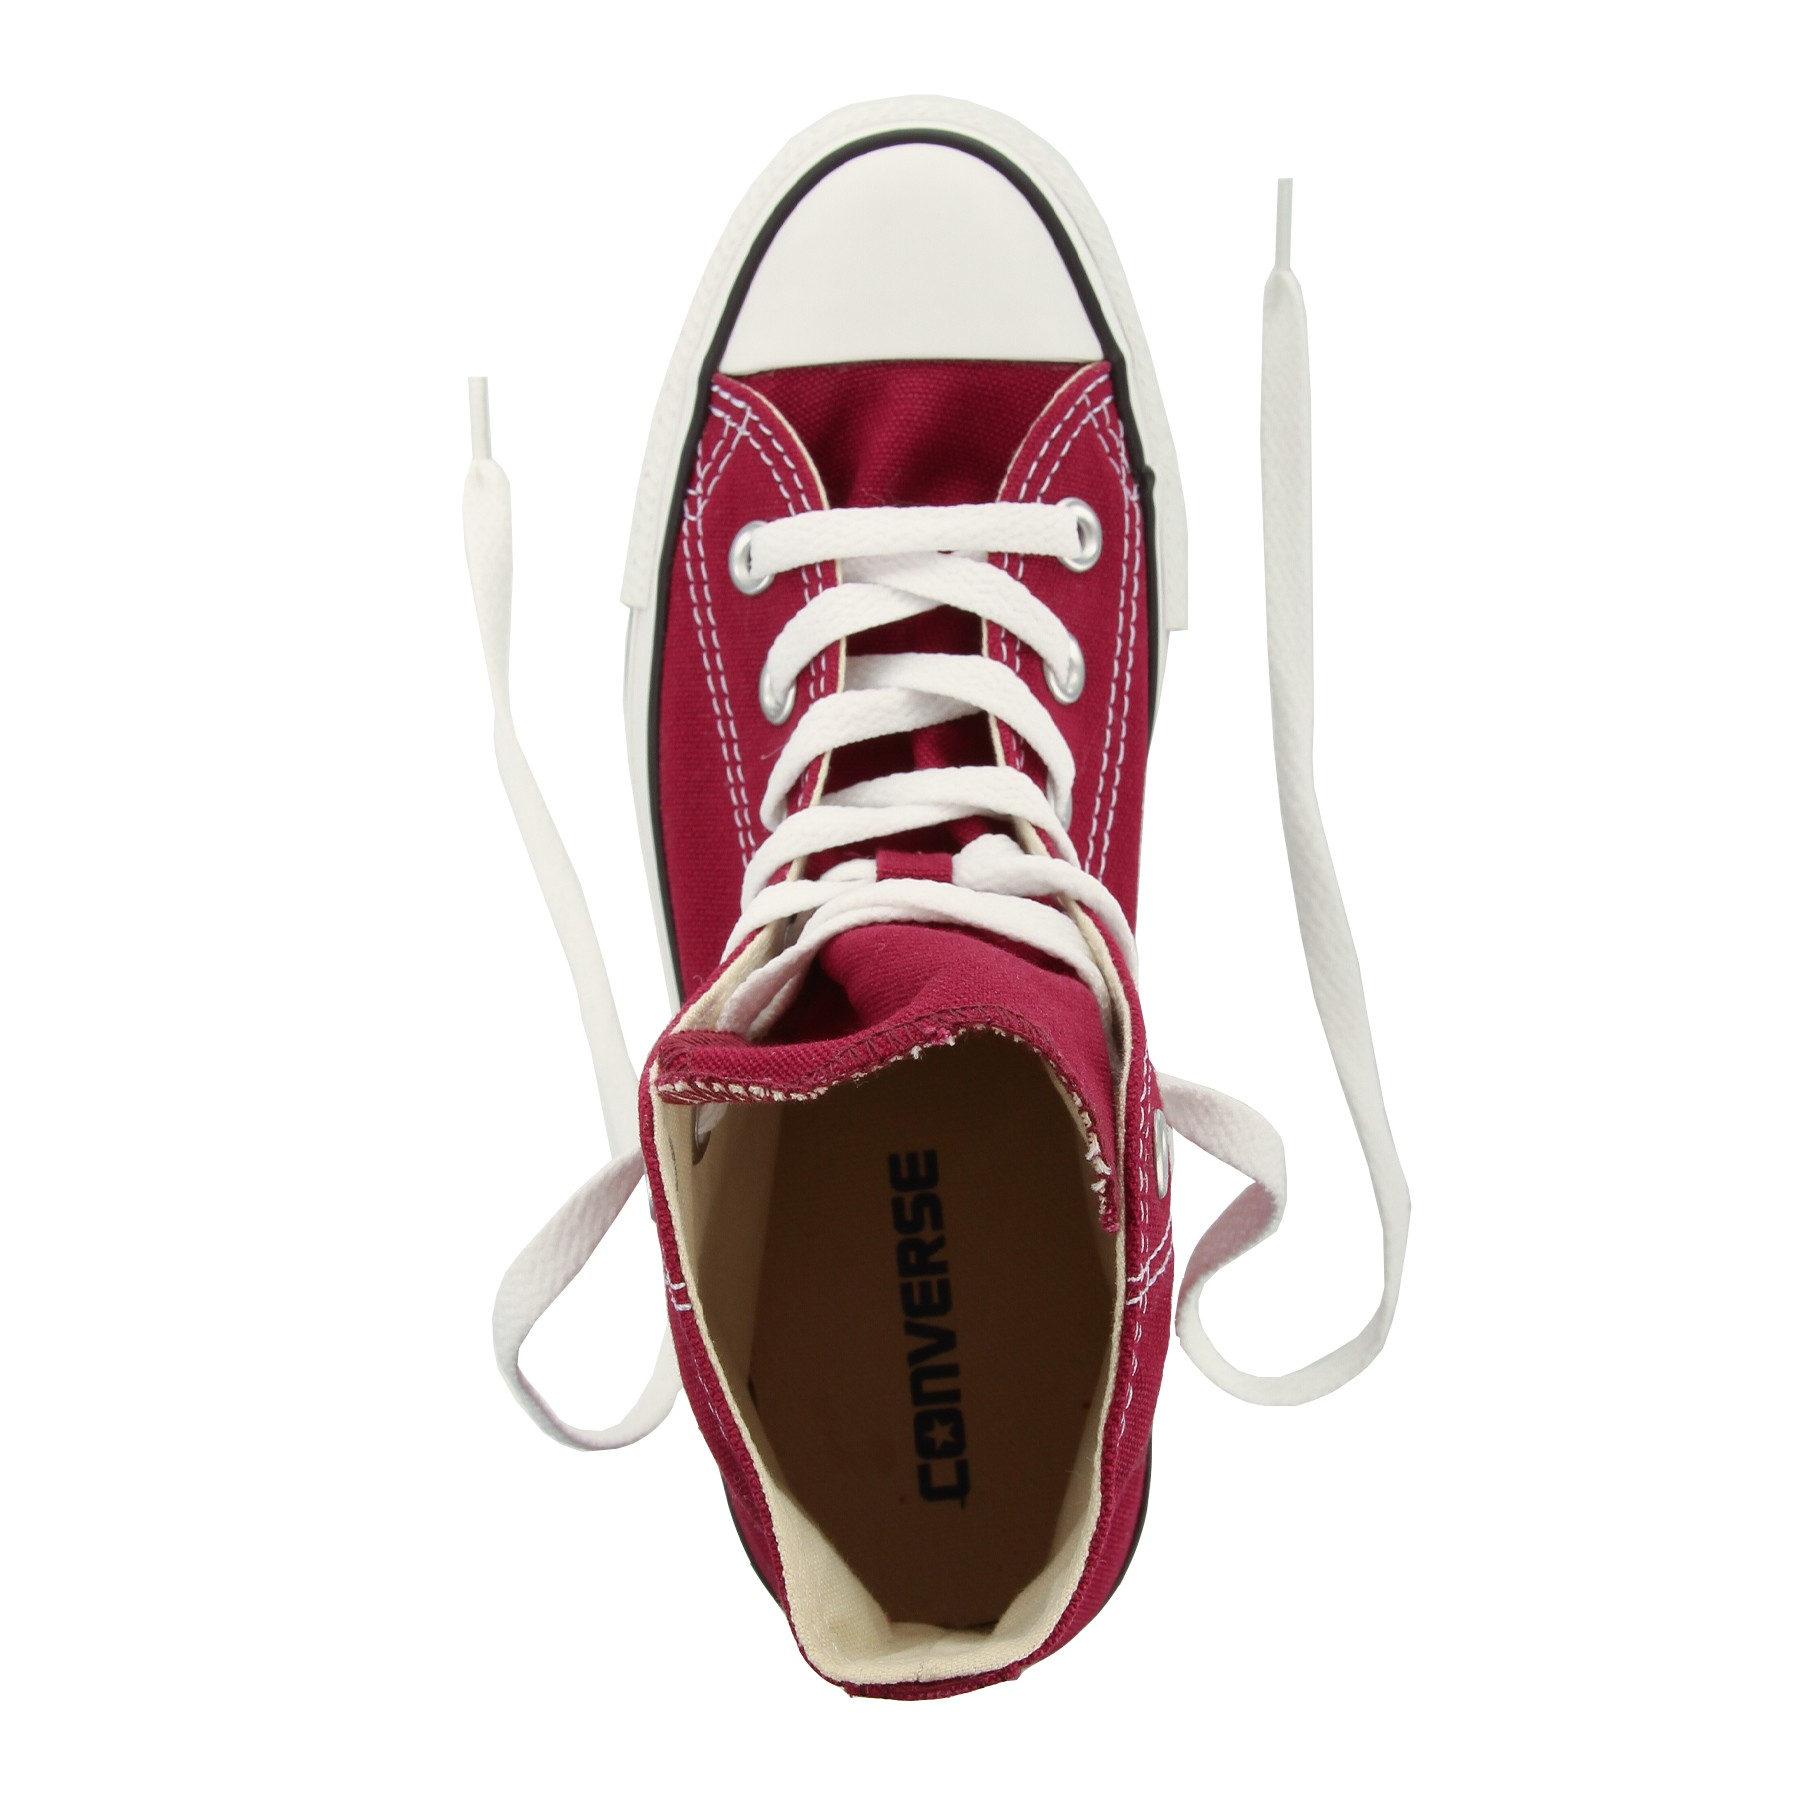 M9613 CT CHUCK TAYLOR AS CORE/MAROON Bild https://cdn03.plentymarkets.com/zsy4vjx32p87/item/images/4267/full/M9613-ama-04.JPG